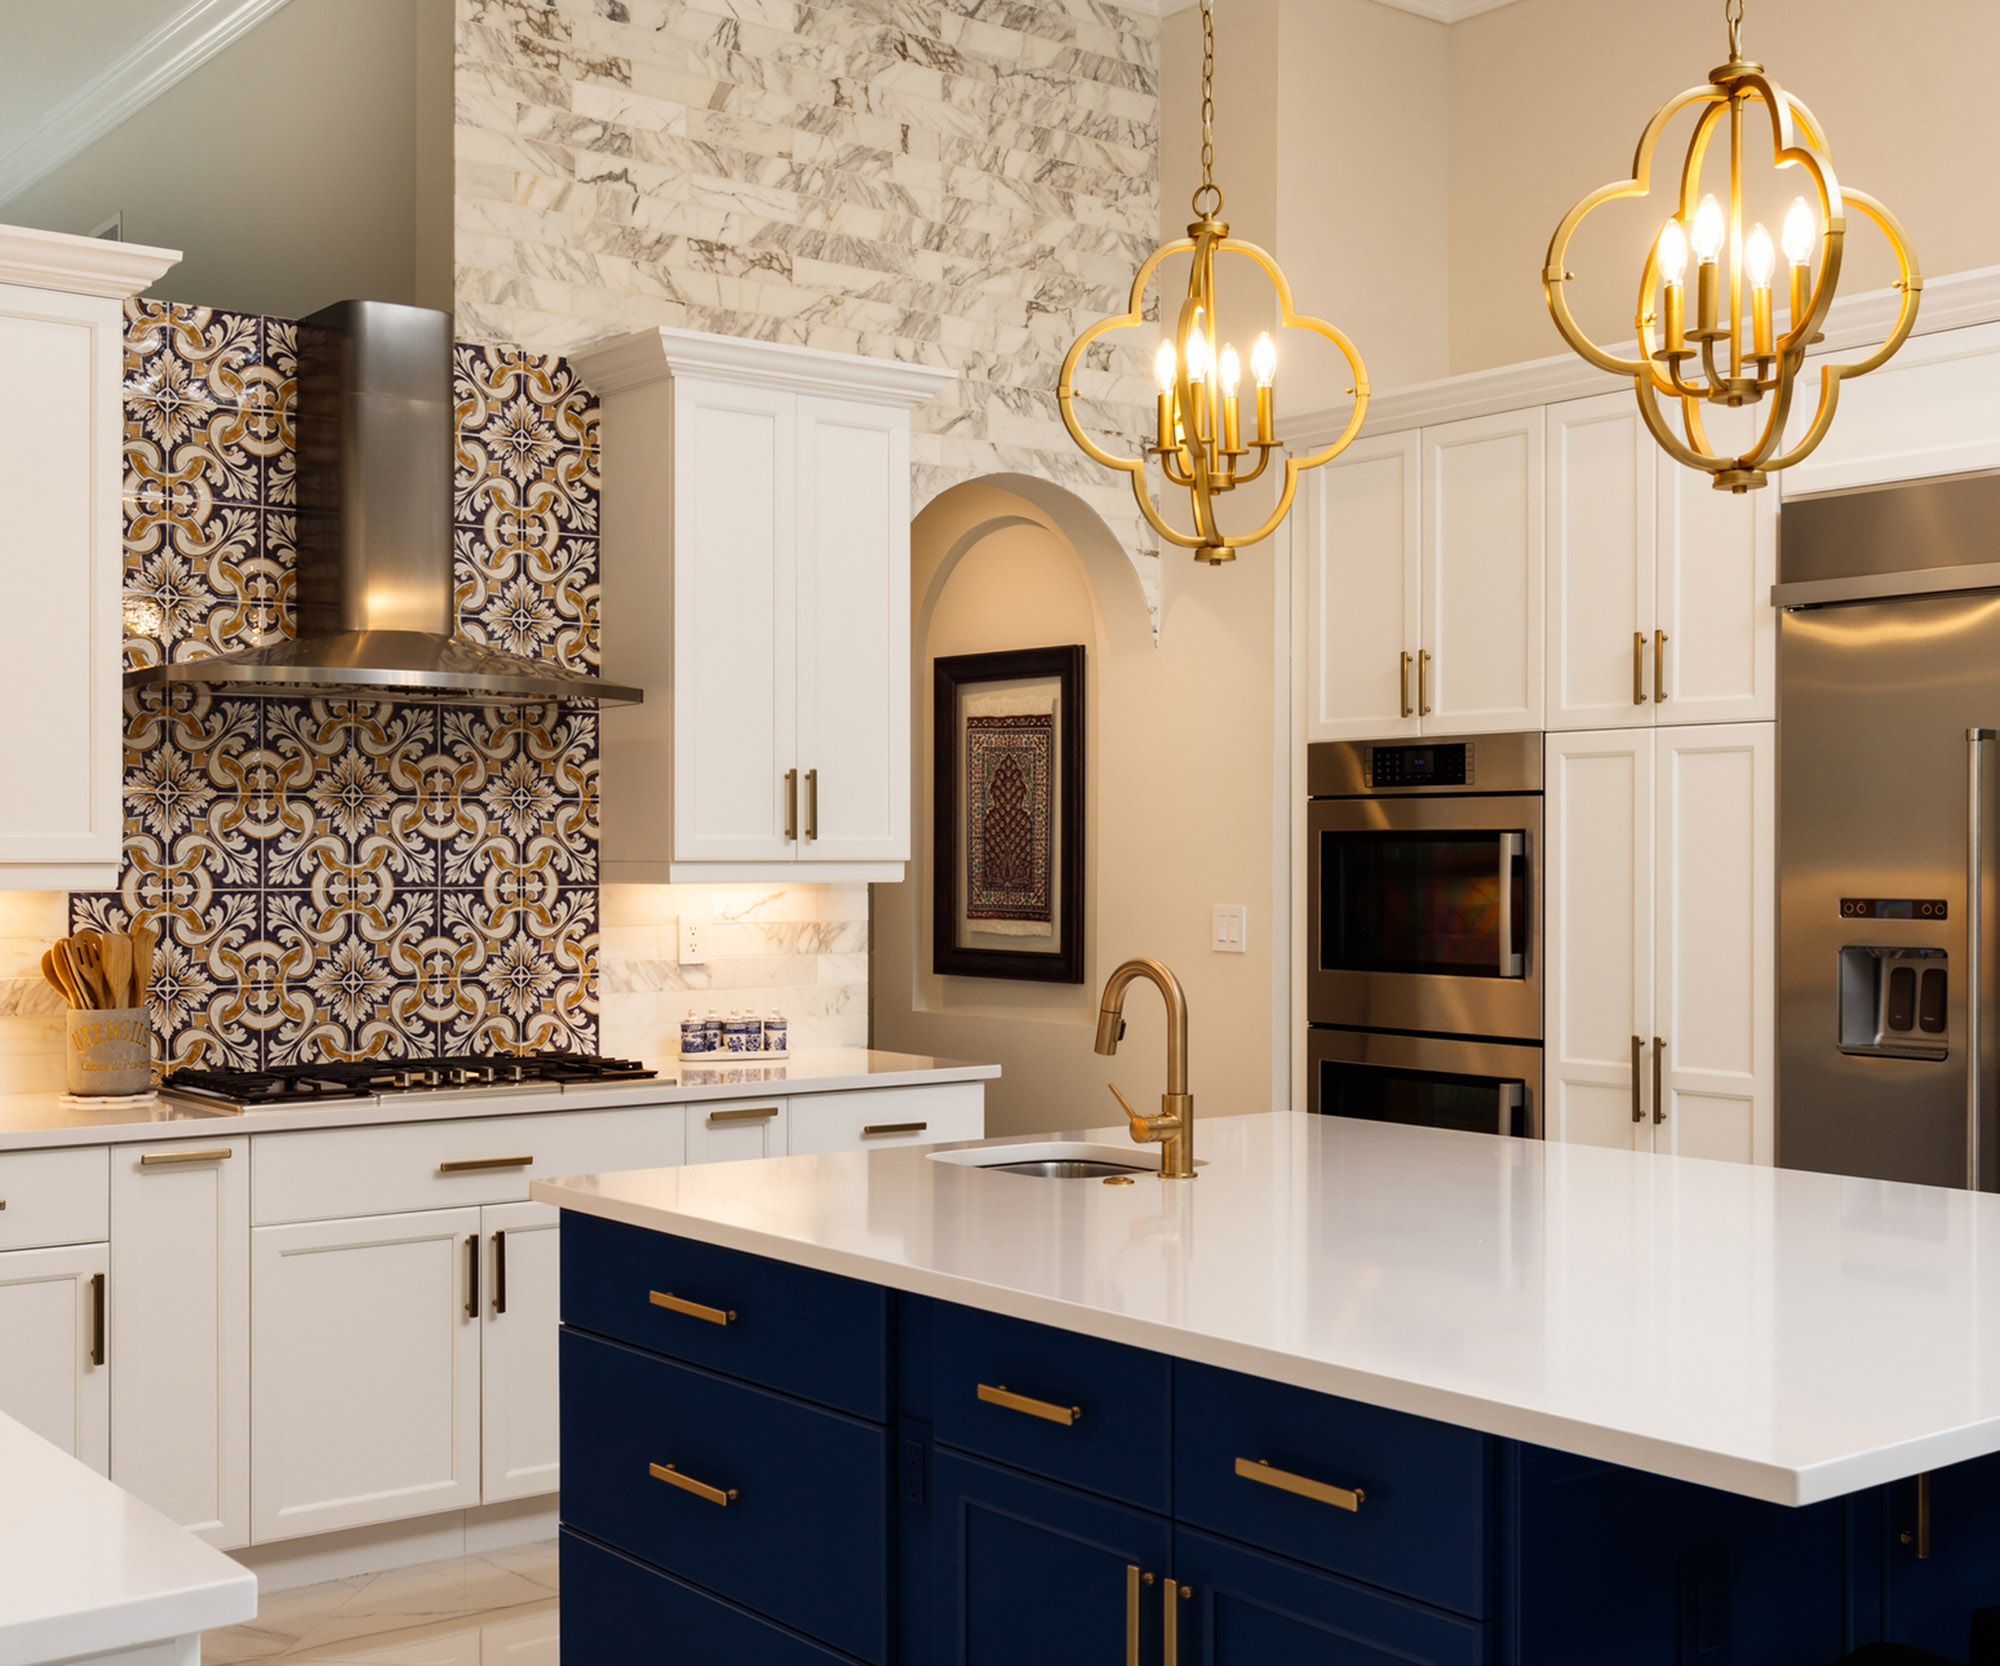 kitchen remodel contractors remodel a new luxury kitchen with white cabinets and colorful backsplash